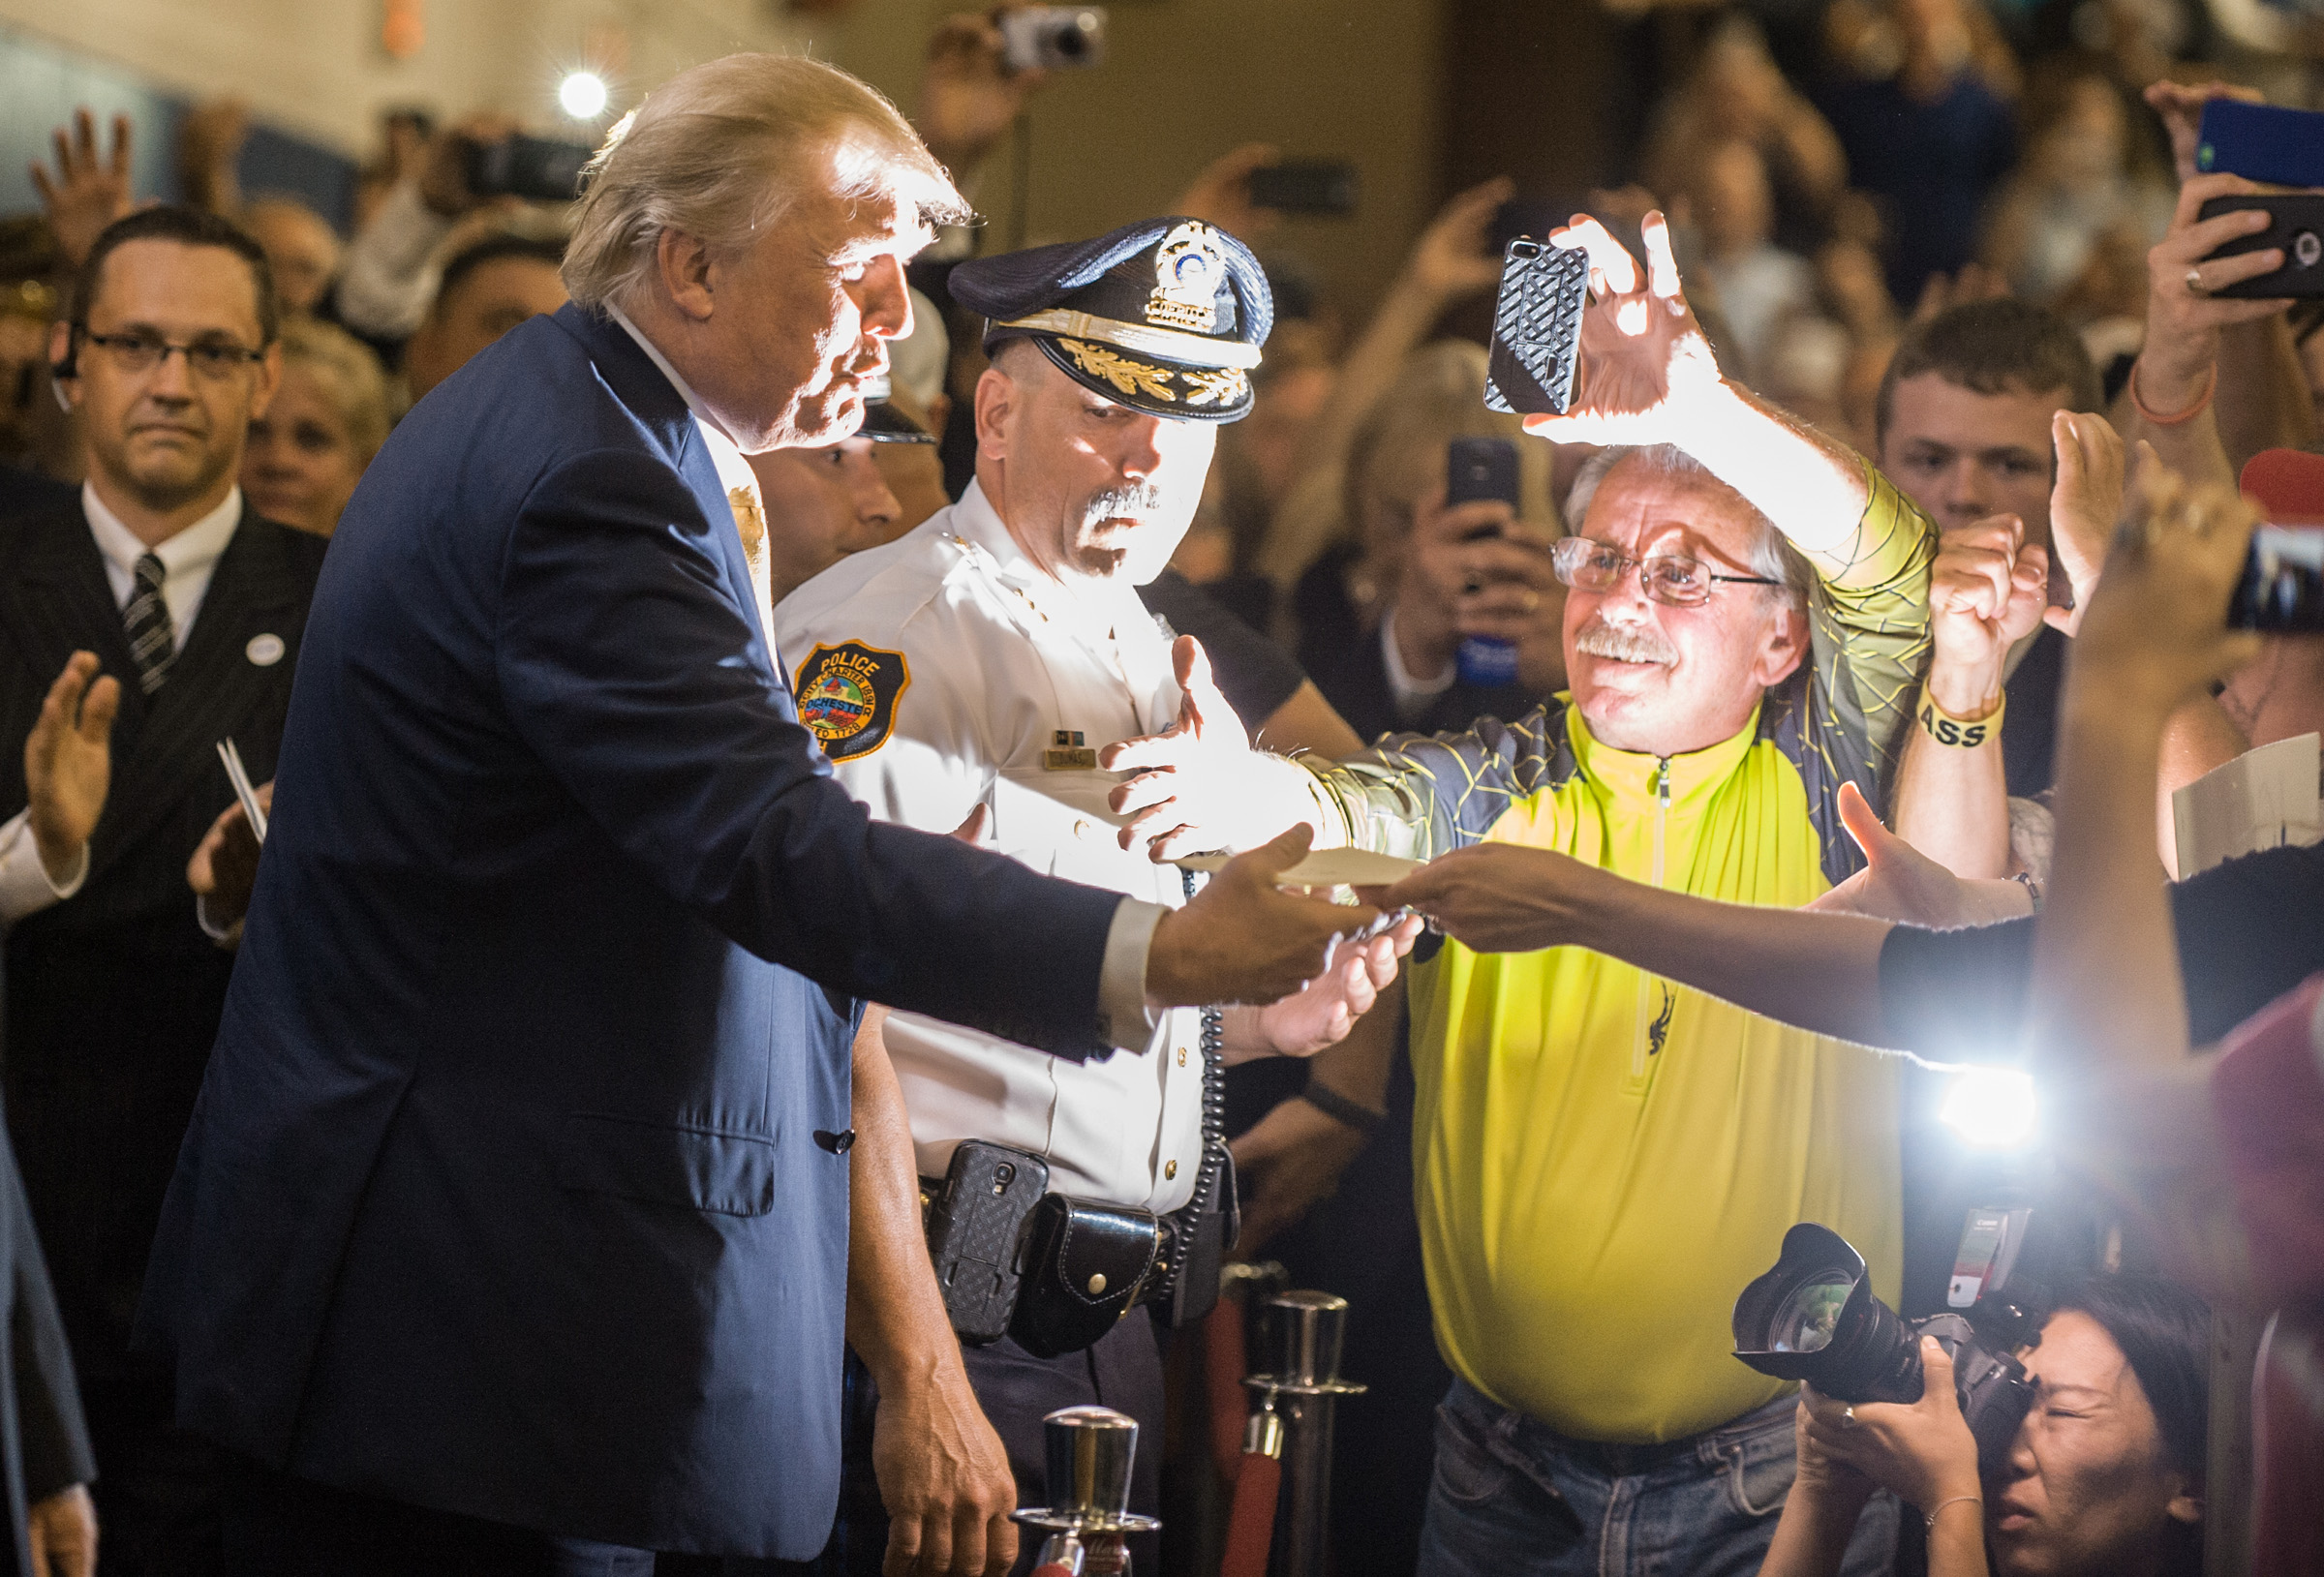 Donald Trump greets a frenzy of spectators jostling for photos as he enters the stage for a town Hall meeting in Rochester, New Hampshire. Trump was mobbed by fans on every step he took at the event.